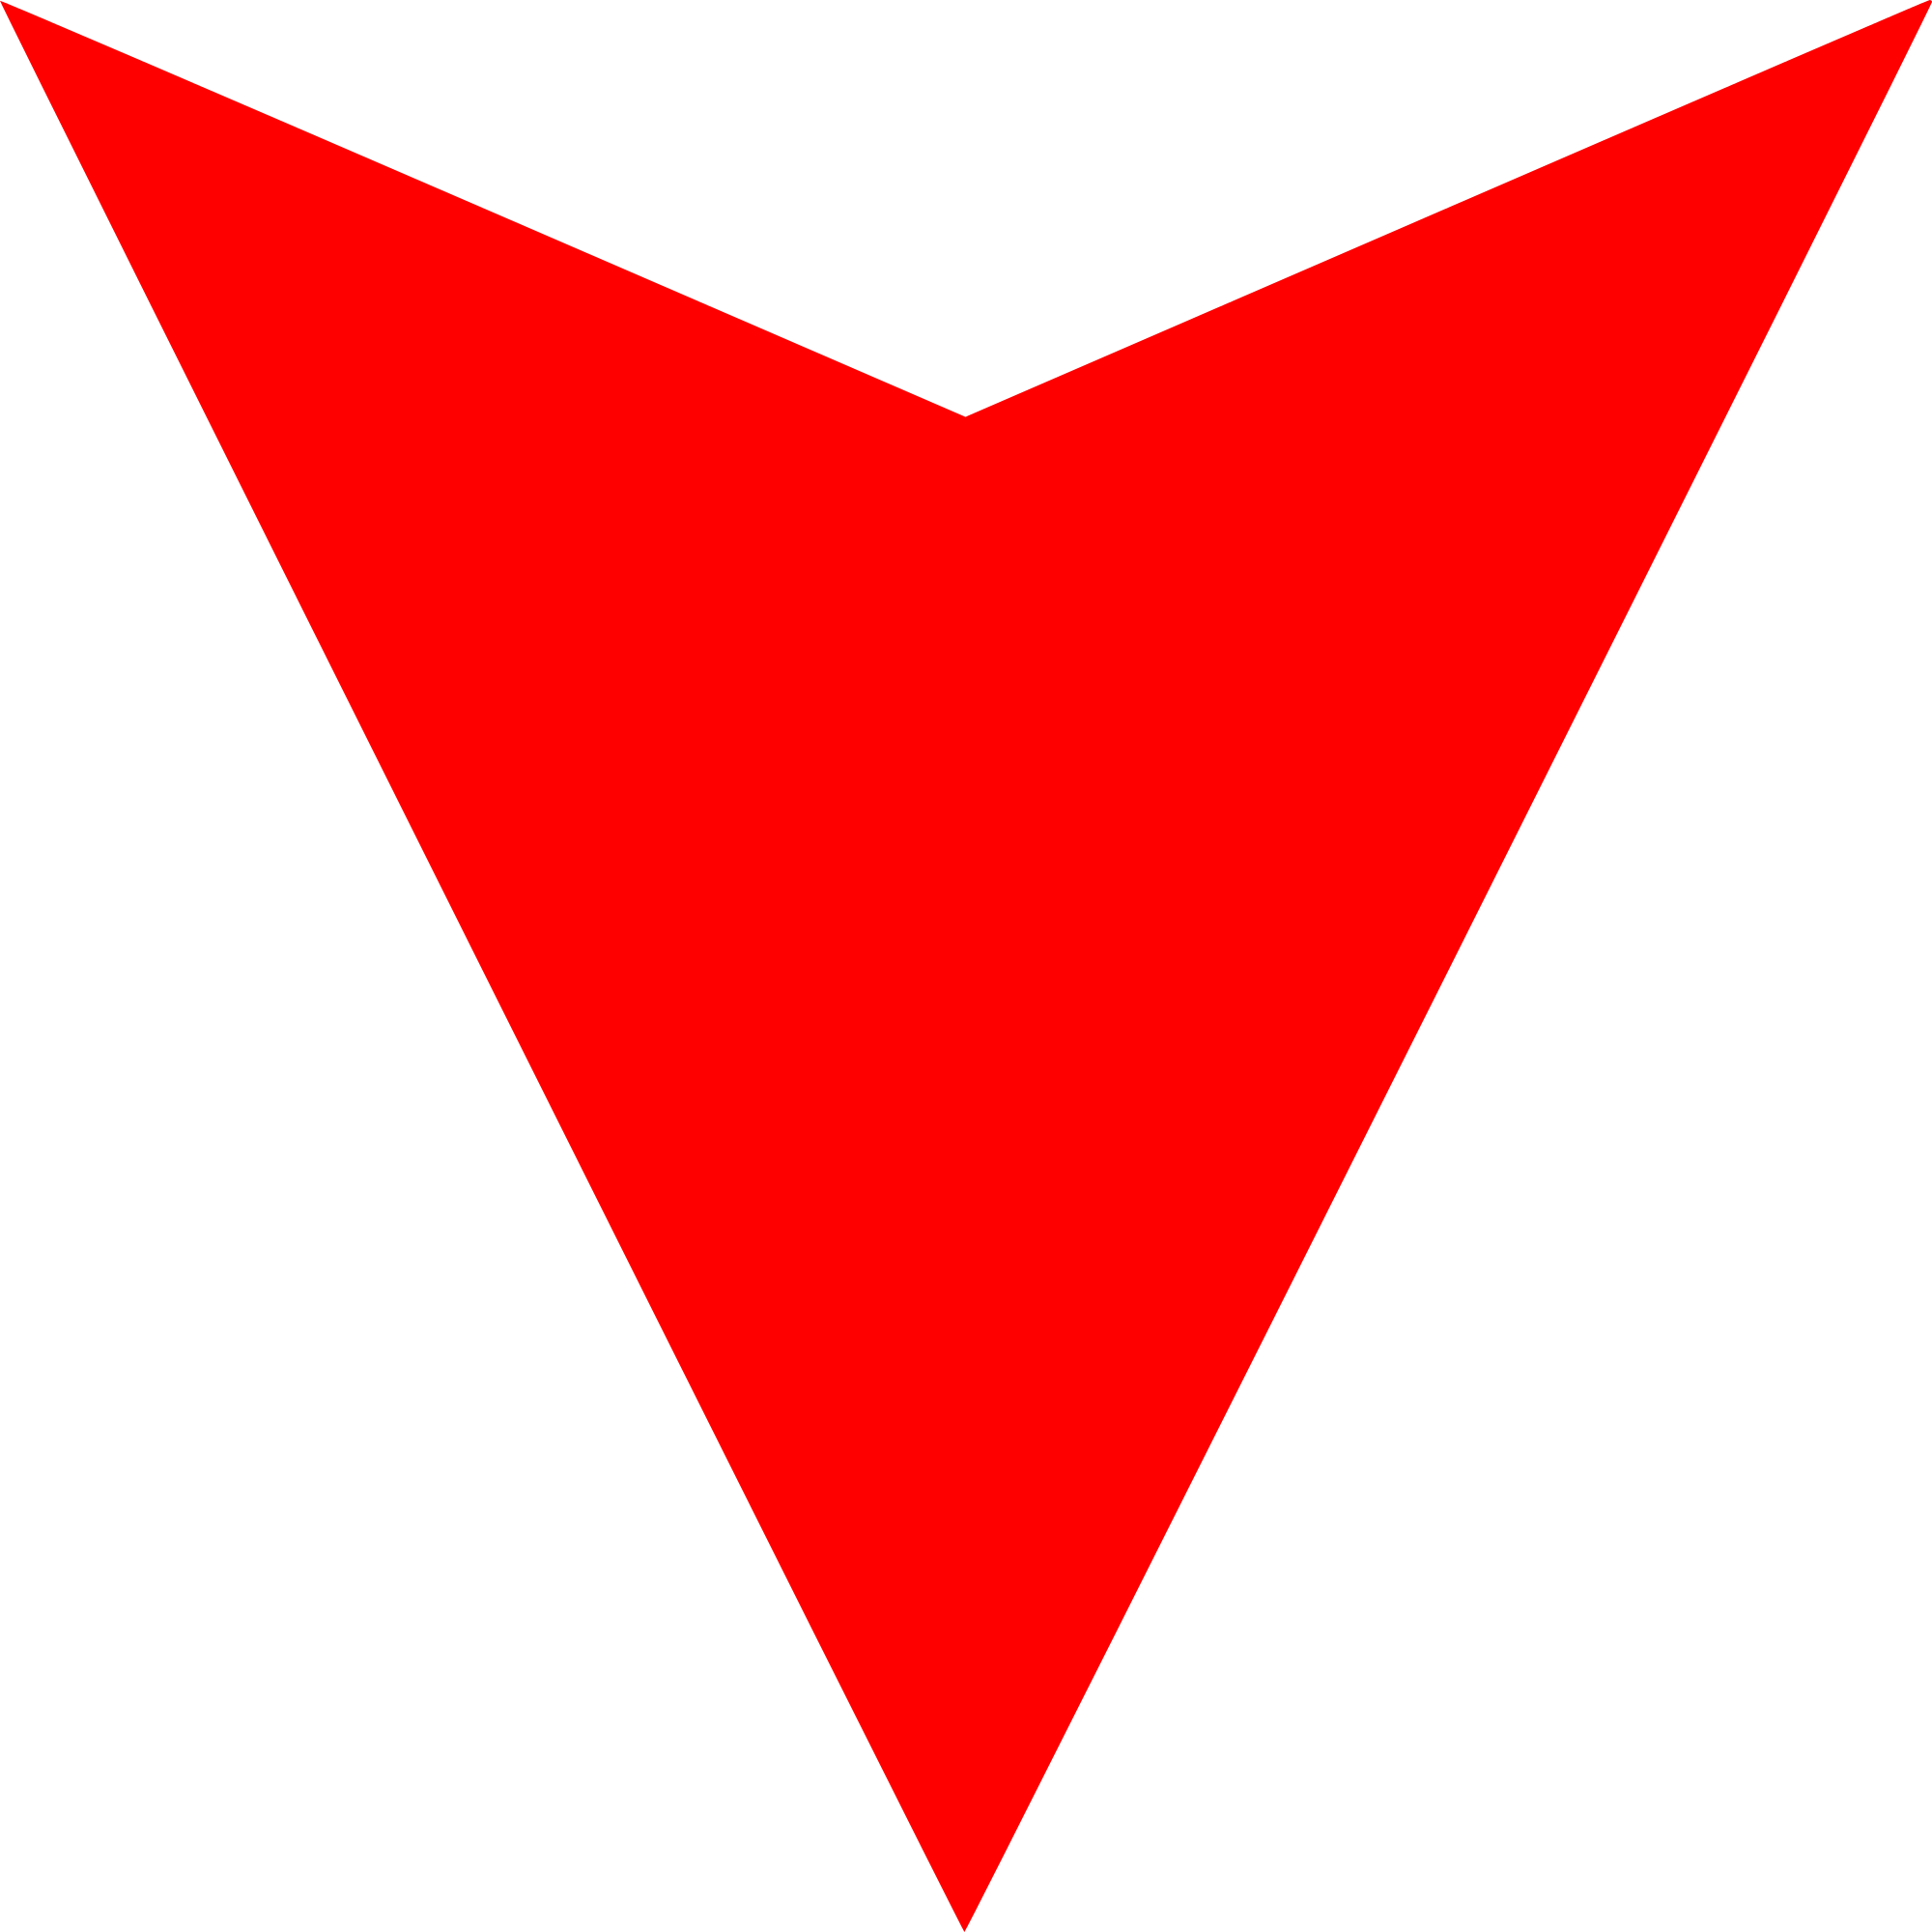 Red arrow image clipart free stock File:Red Arrow Down.svg - Wikimedia Commons clipart free stock